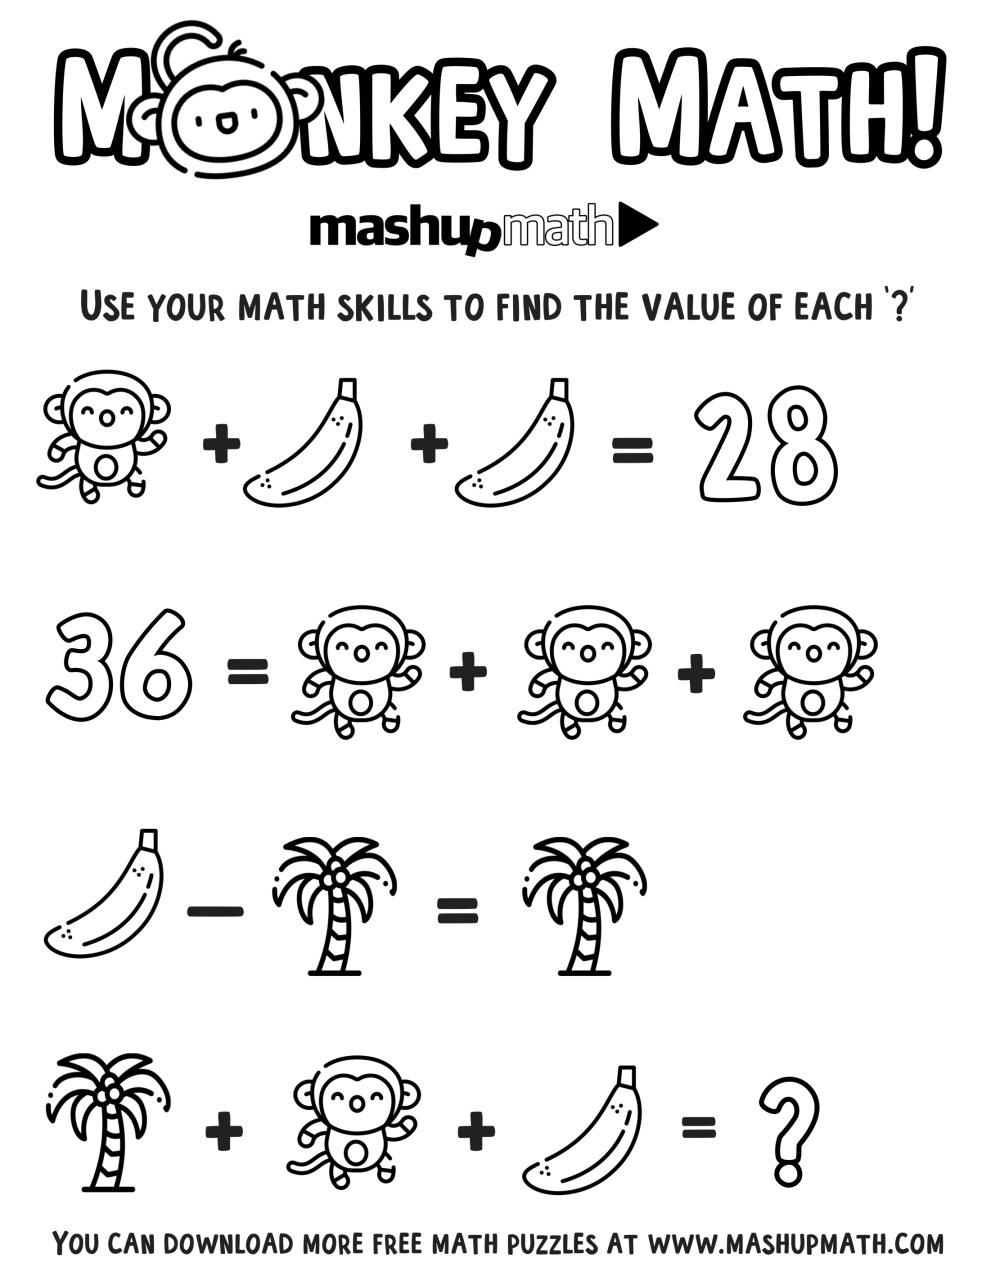 medium resolution of Free Math Coloring Worksheets for Grades 1-8 — Mashup Math